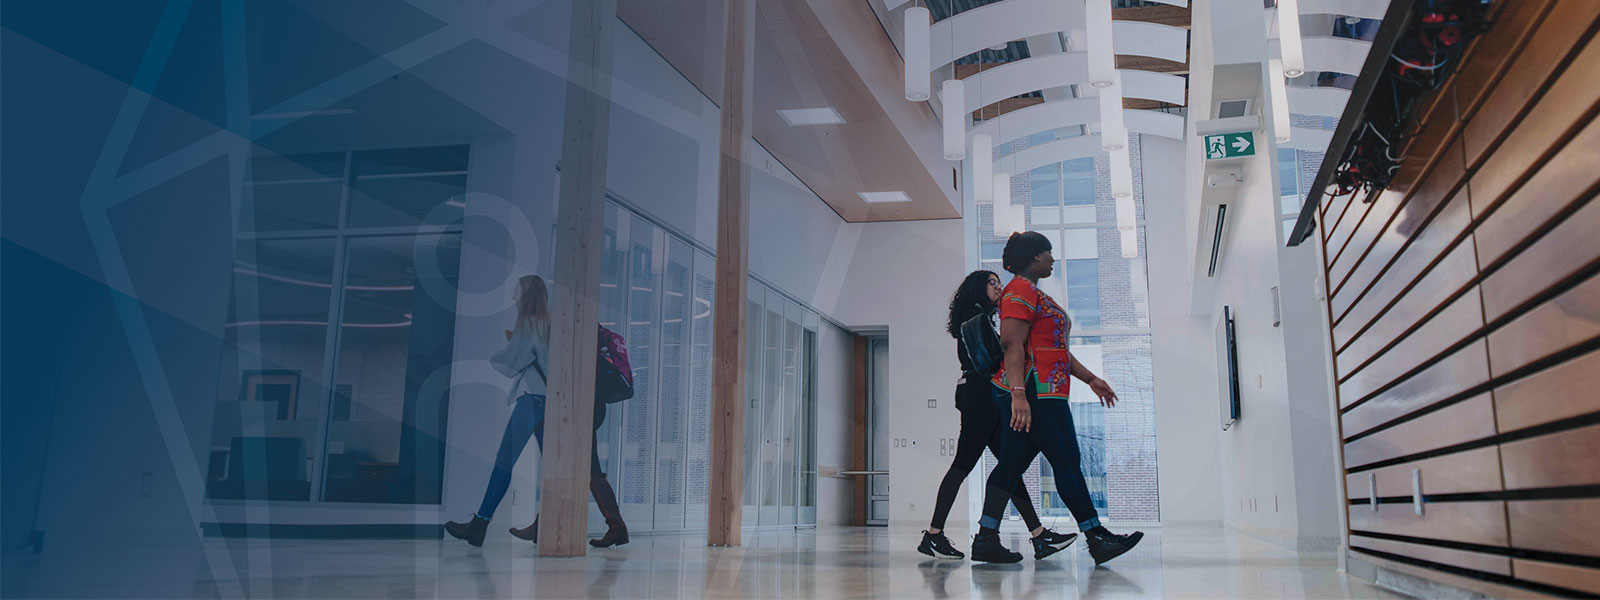 Students walking in CASES Building